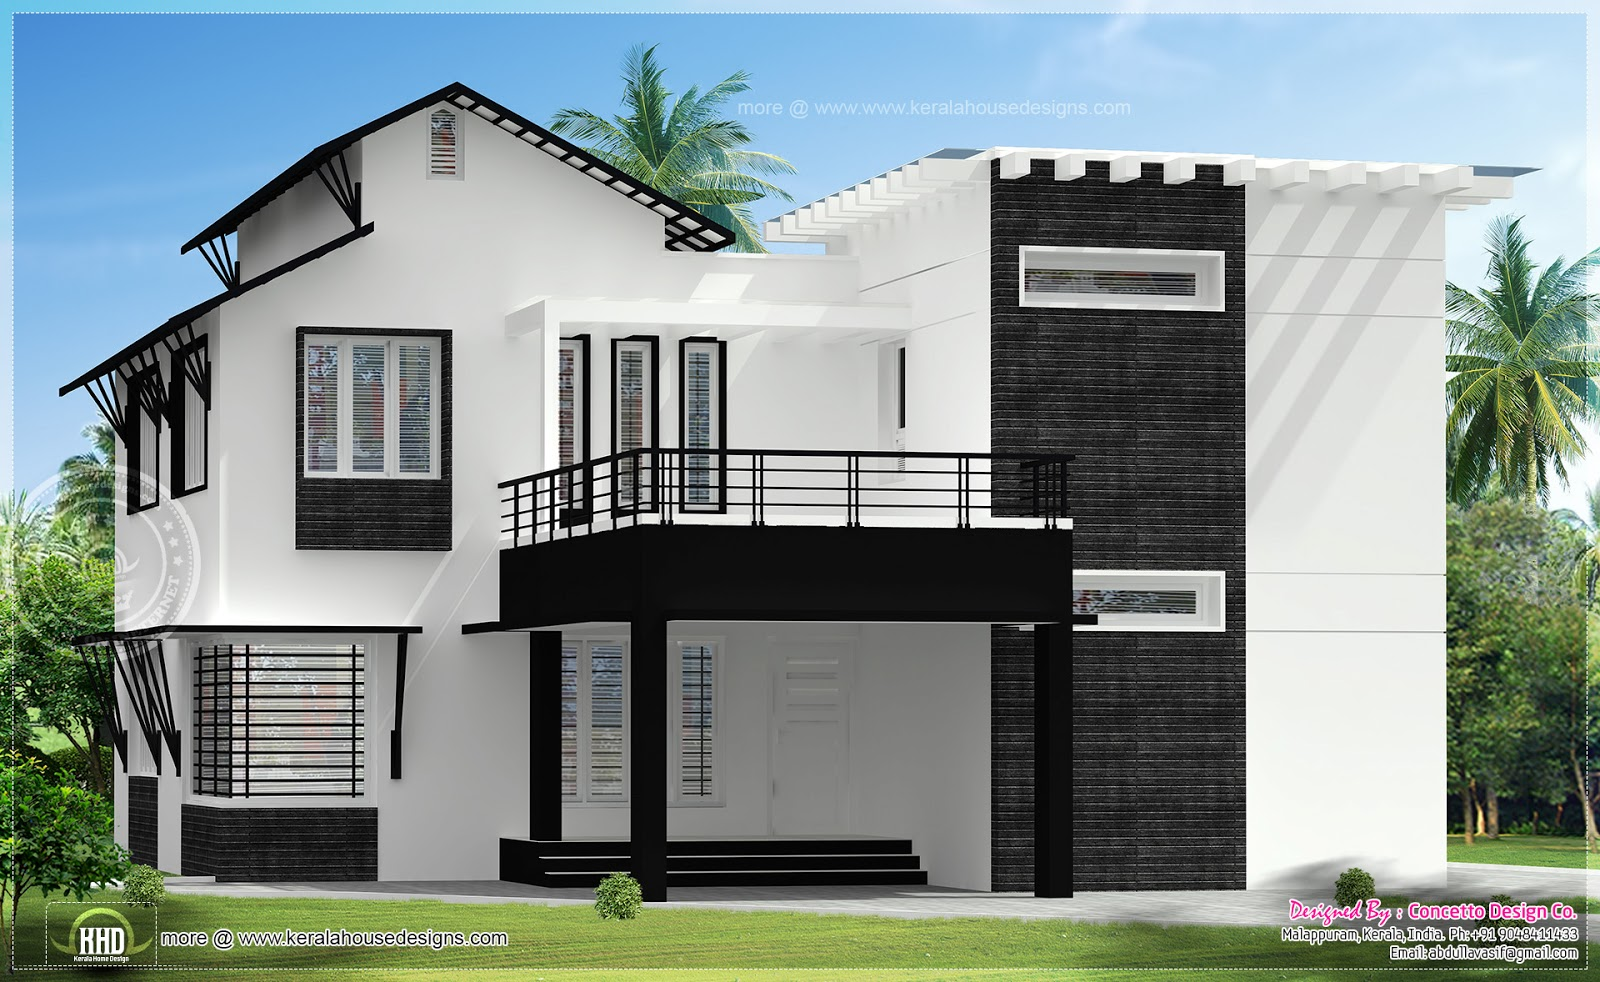 5 different house exteriors by concetto design kerala for Home plans architect